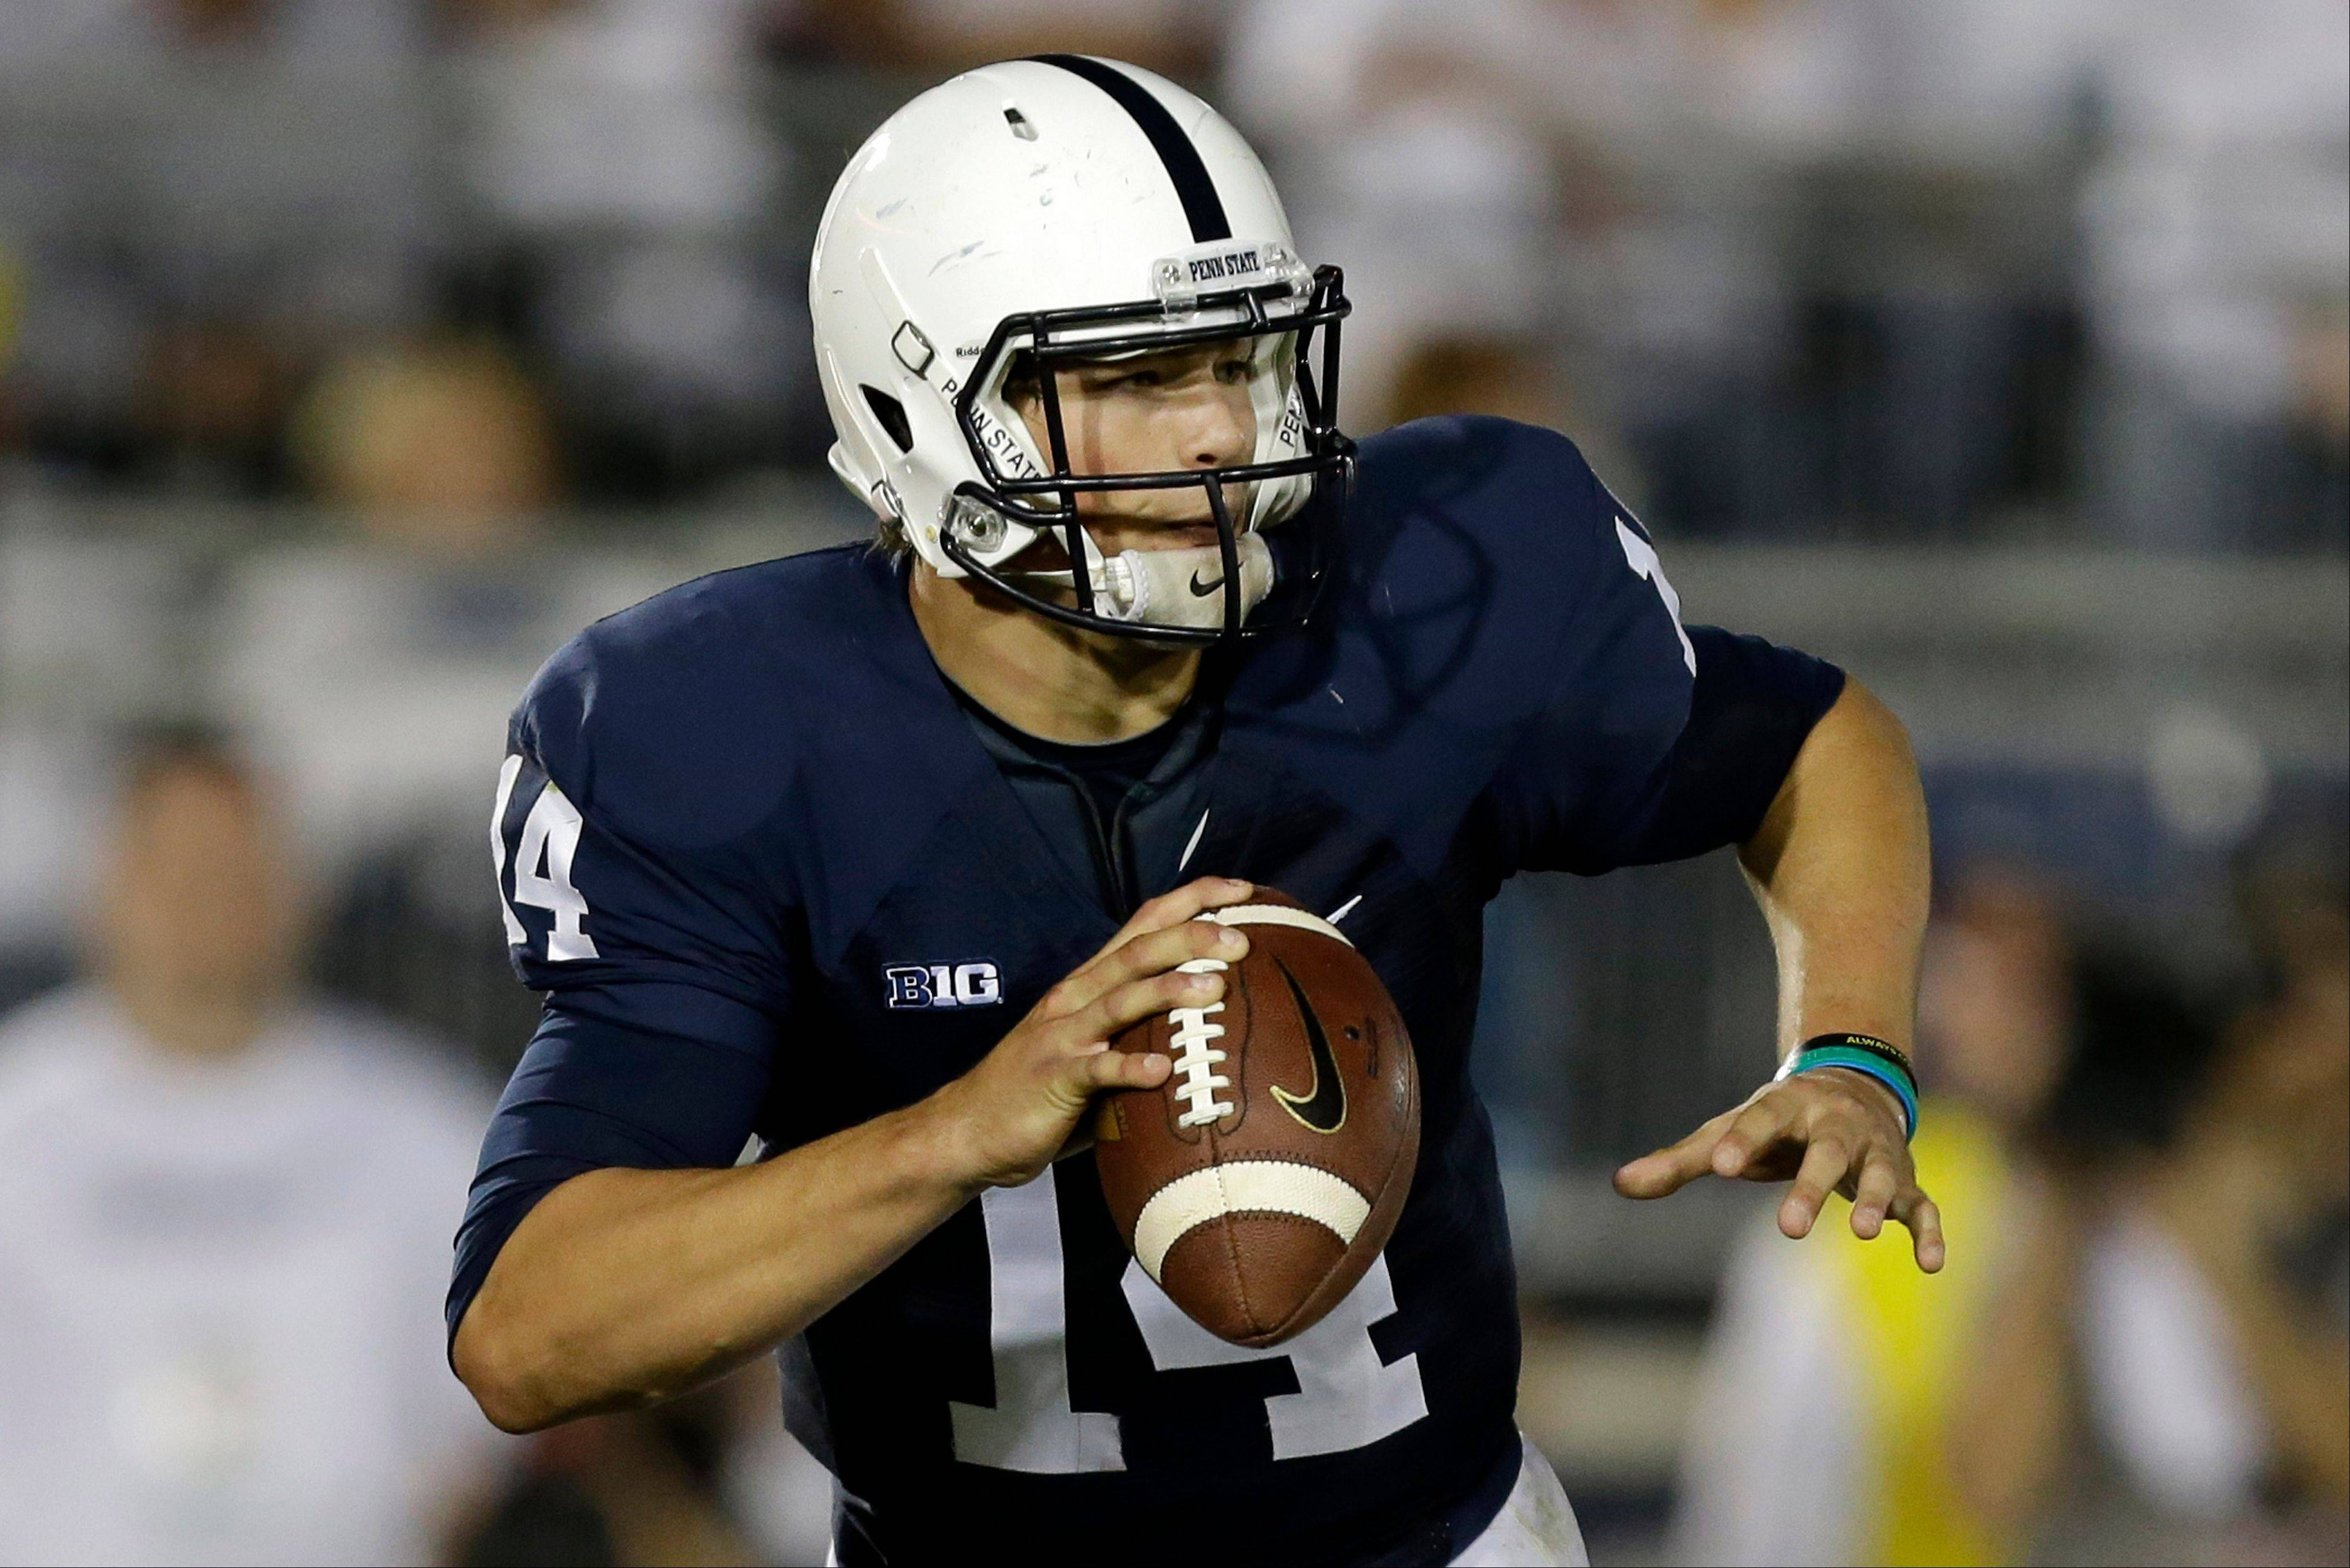 Penn State freshman quarterback Christian Hackenberg leads the Big Ten in completions (132) and passing yards per game (279).